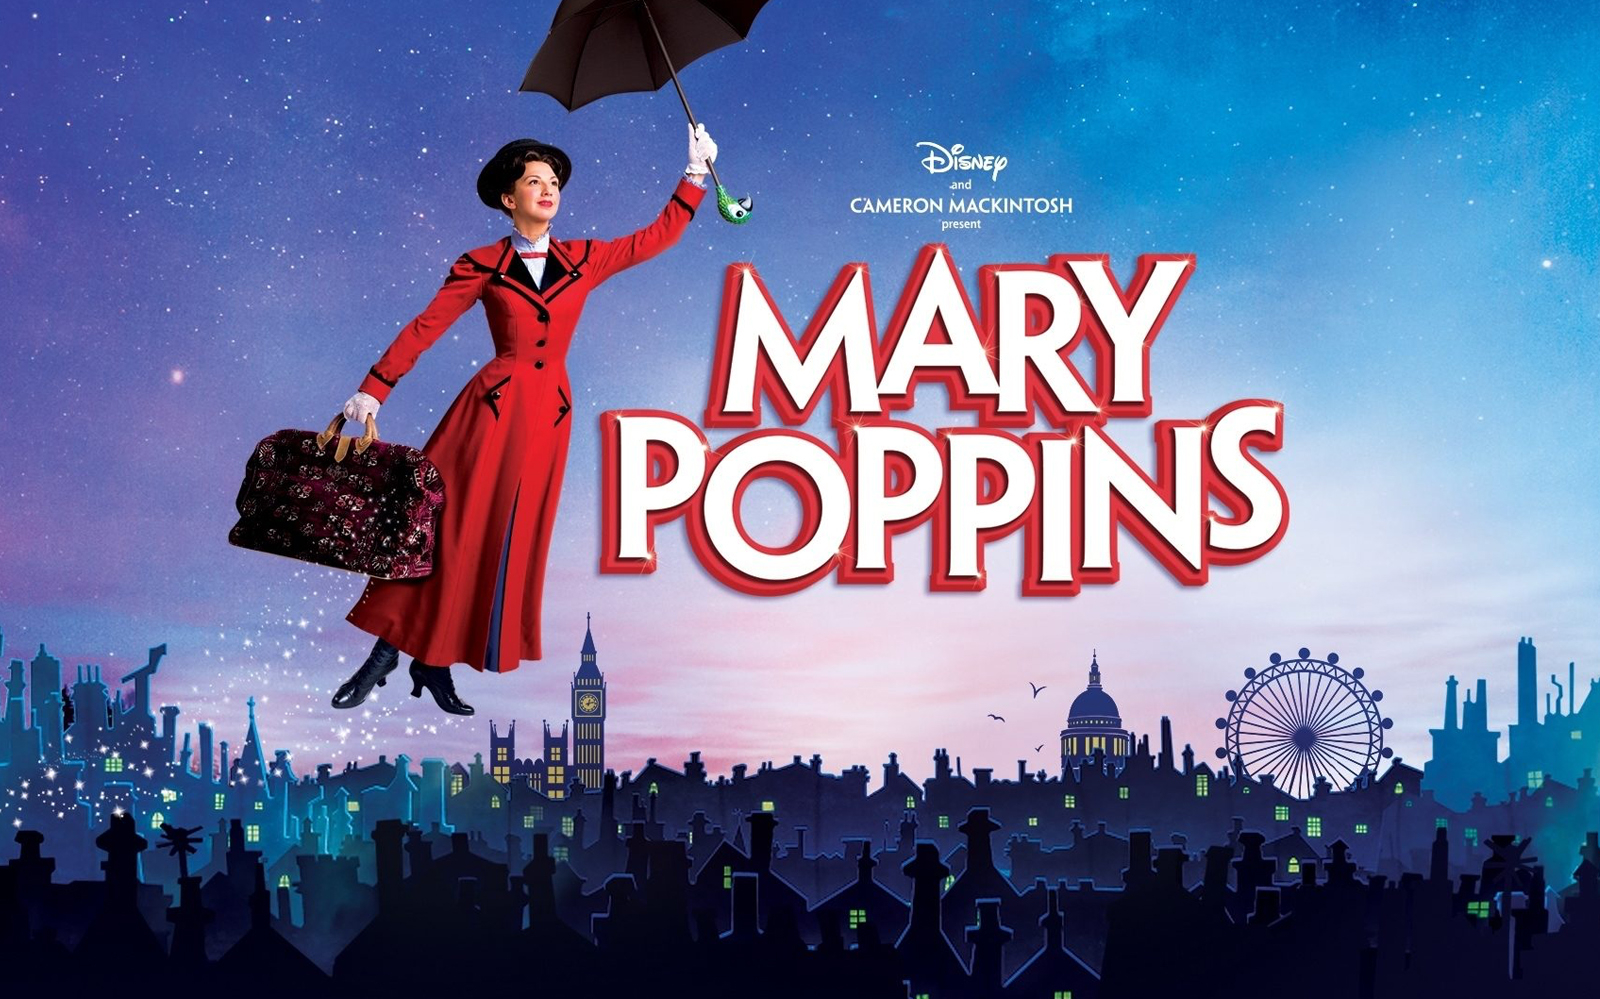 293db697 2152 4342 895b 7c8631d8646f 10051 london mary poppins 01